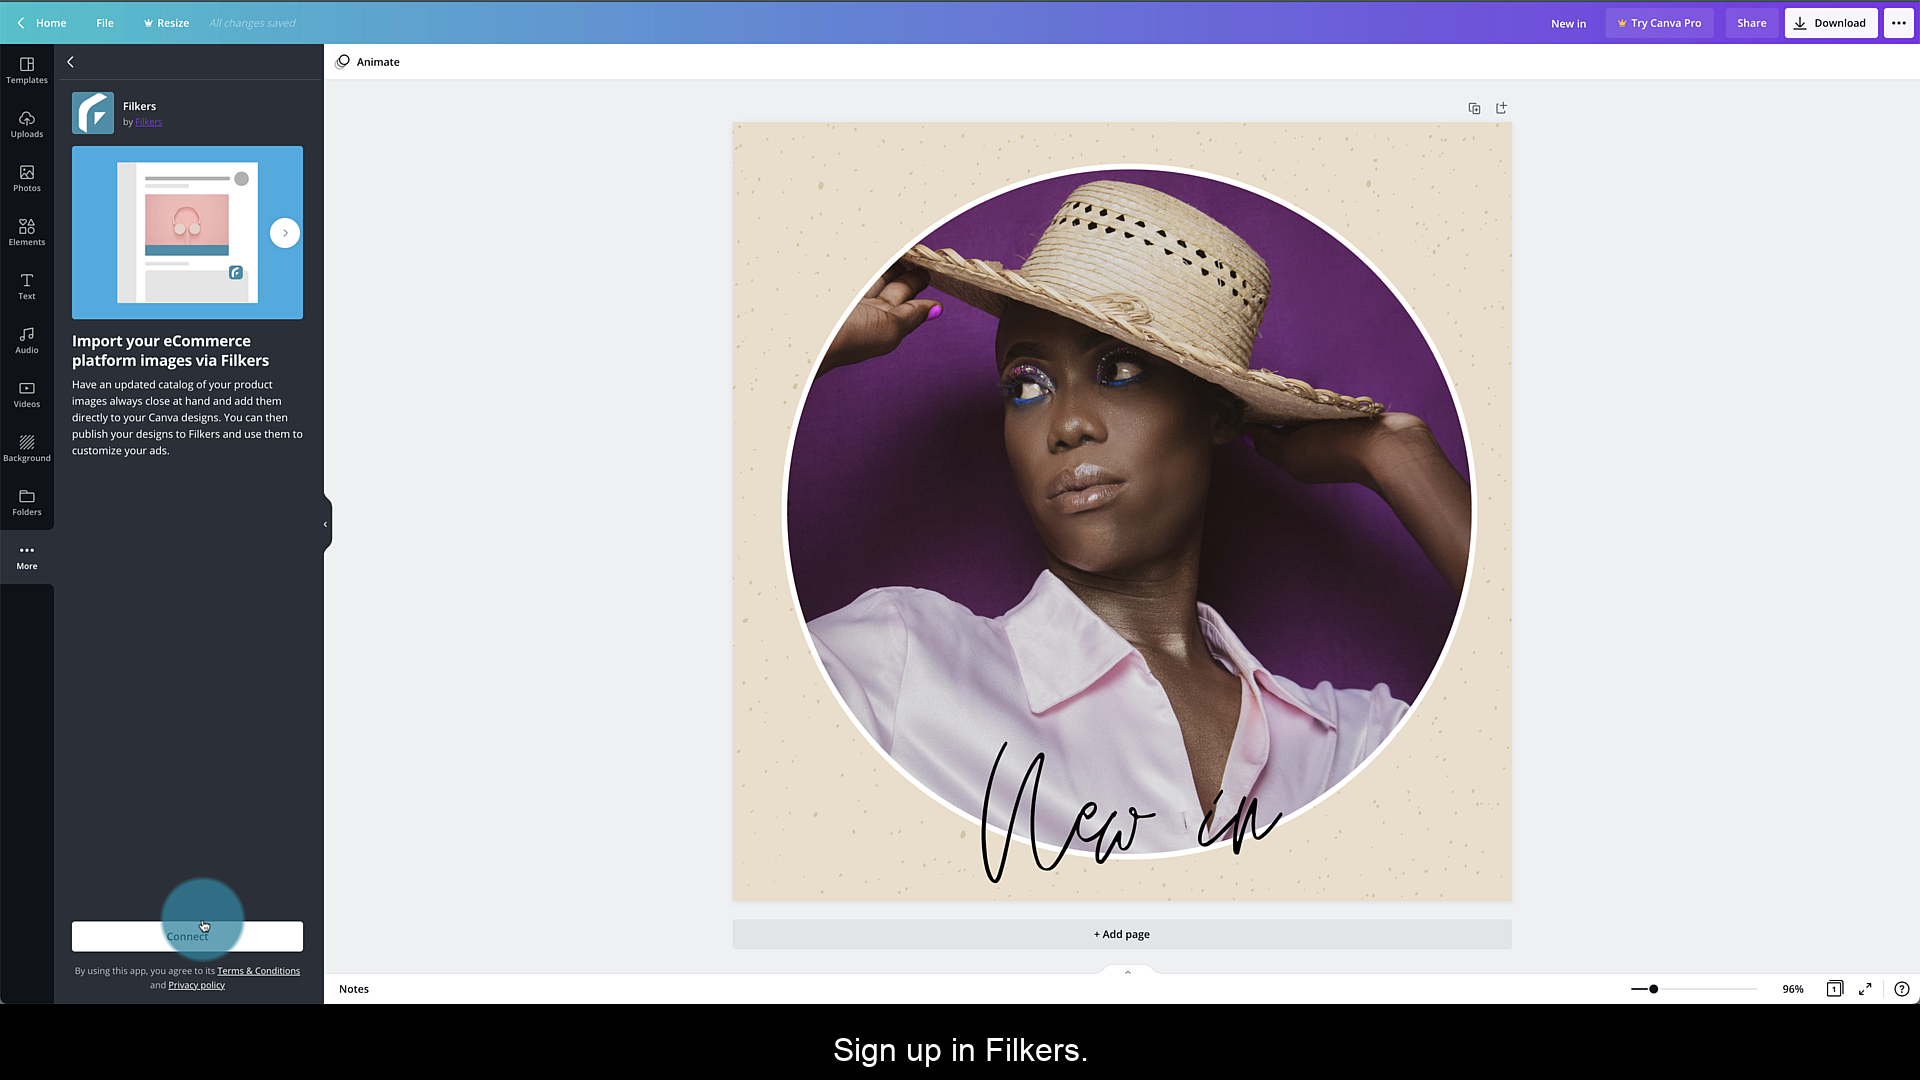 Connect Canva with Filkers: tap Connect